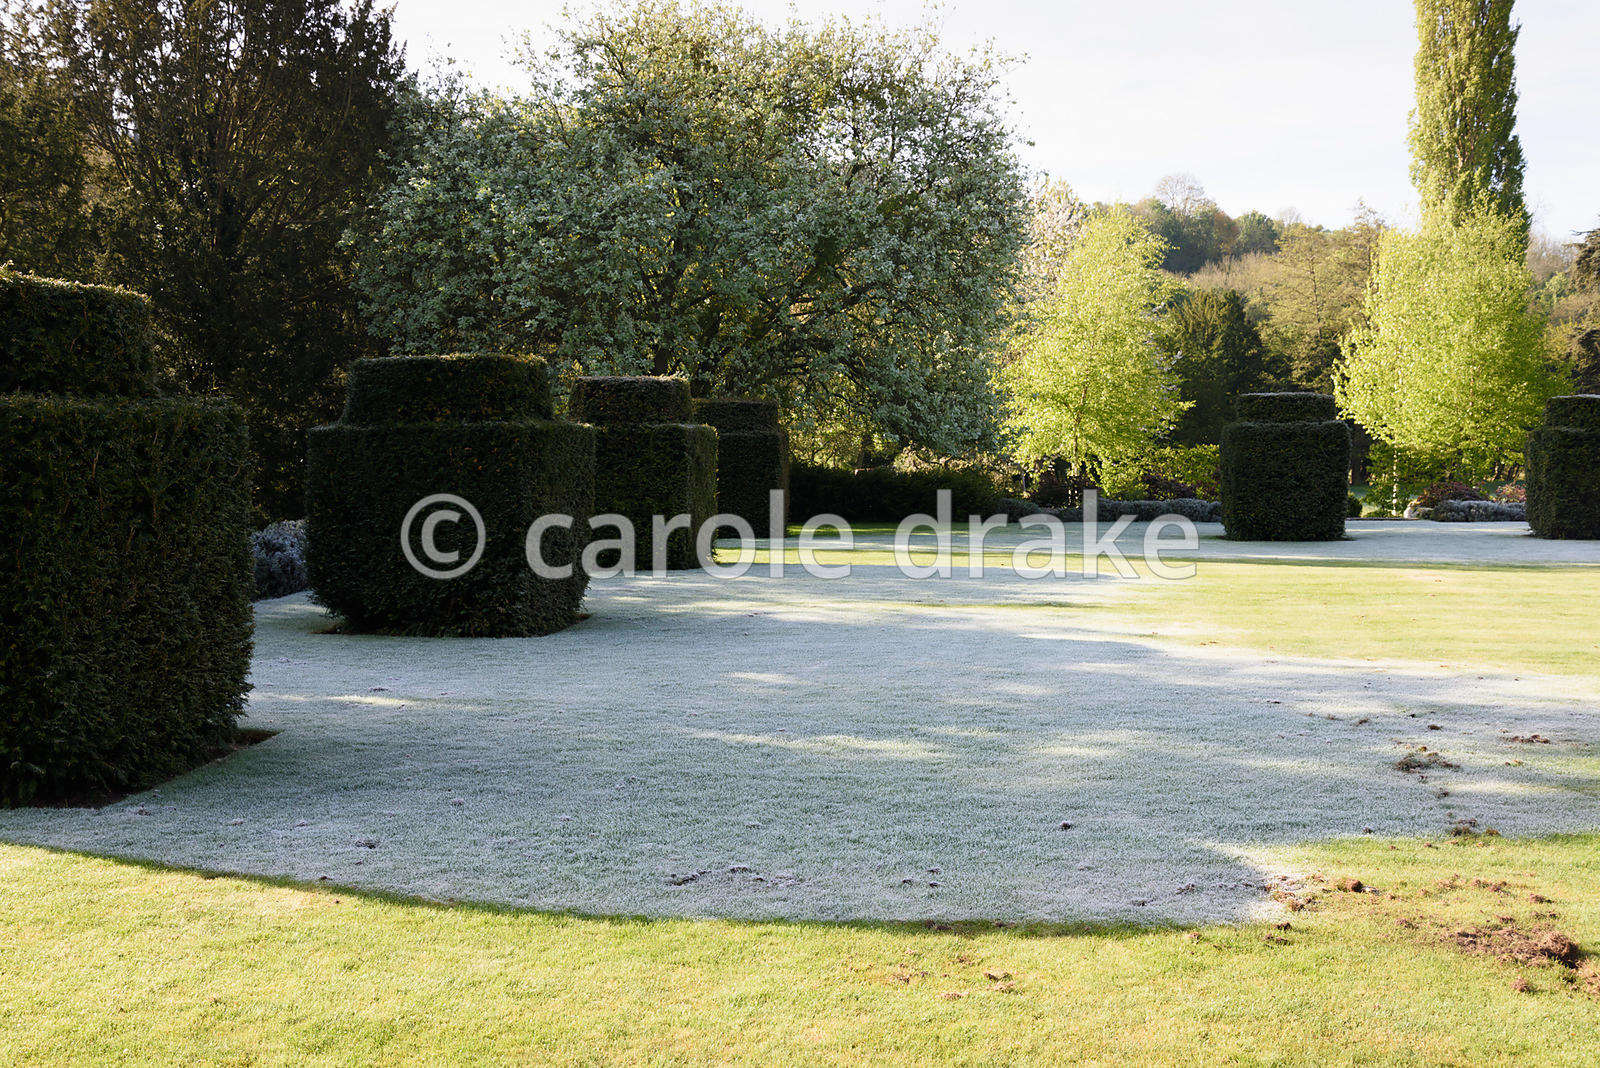 Sun melts frost on a lawn surrounded by yew blocks on a cold April morning at Heale House, Middle Woodford, Wiltshire